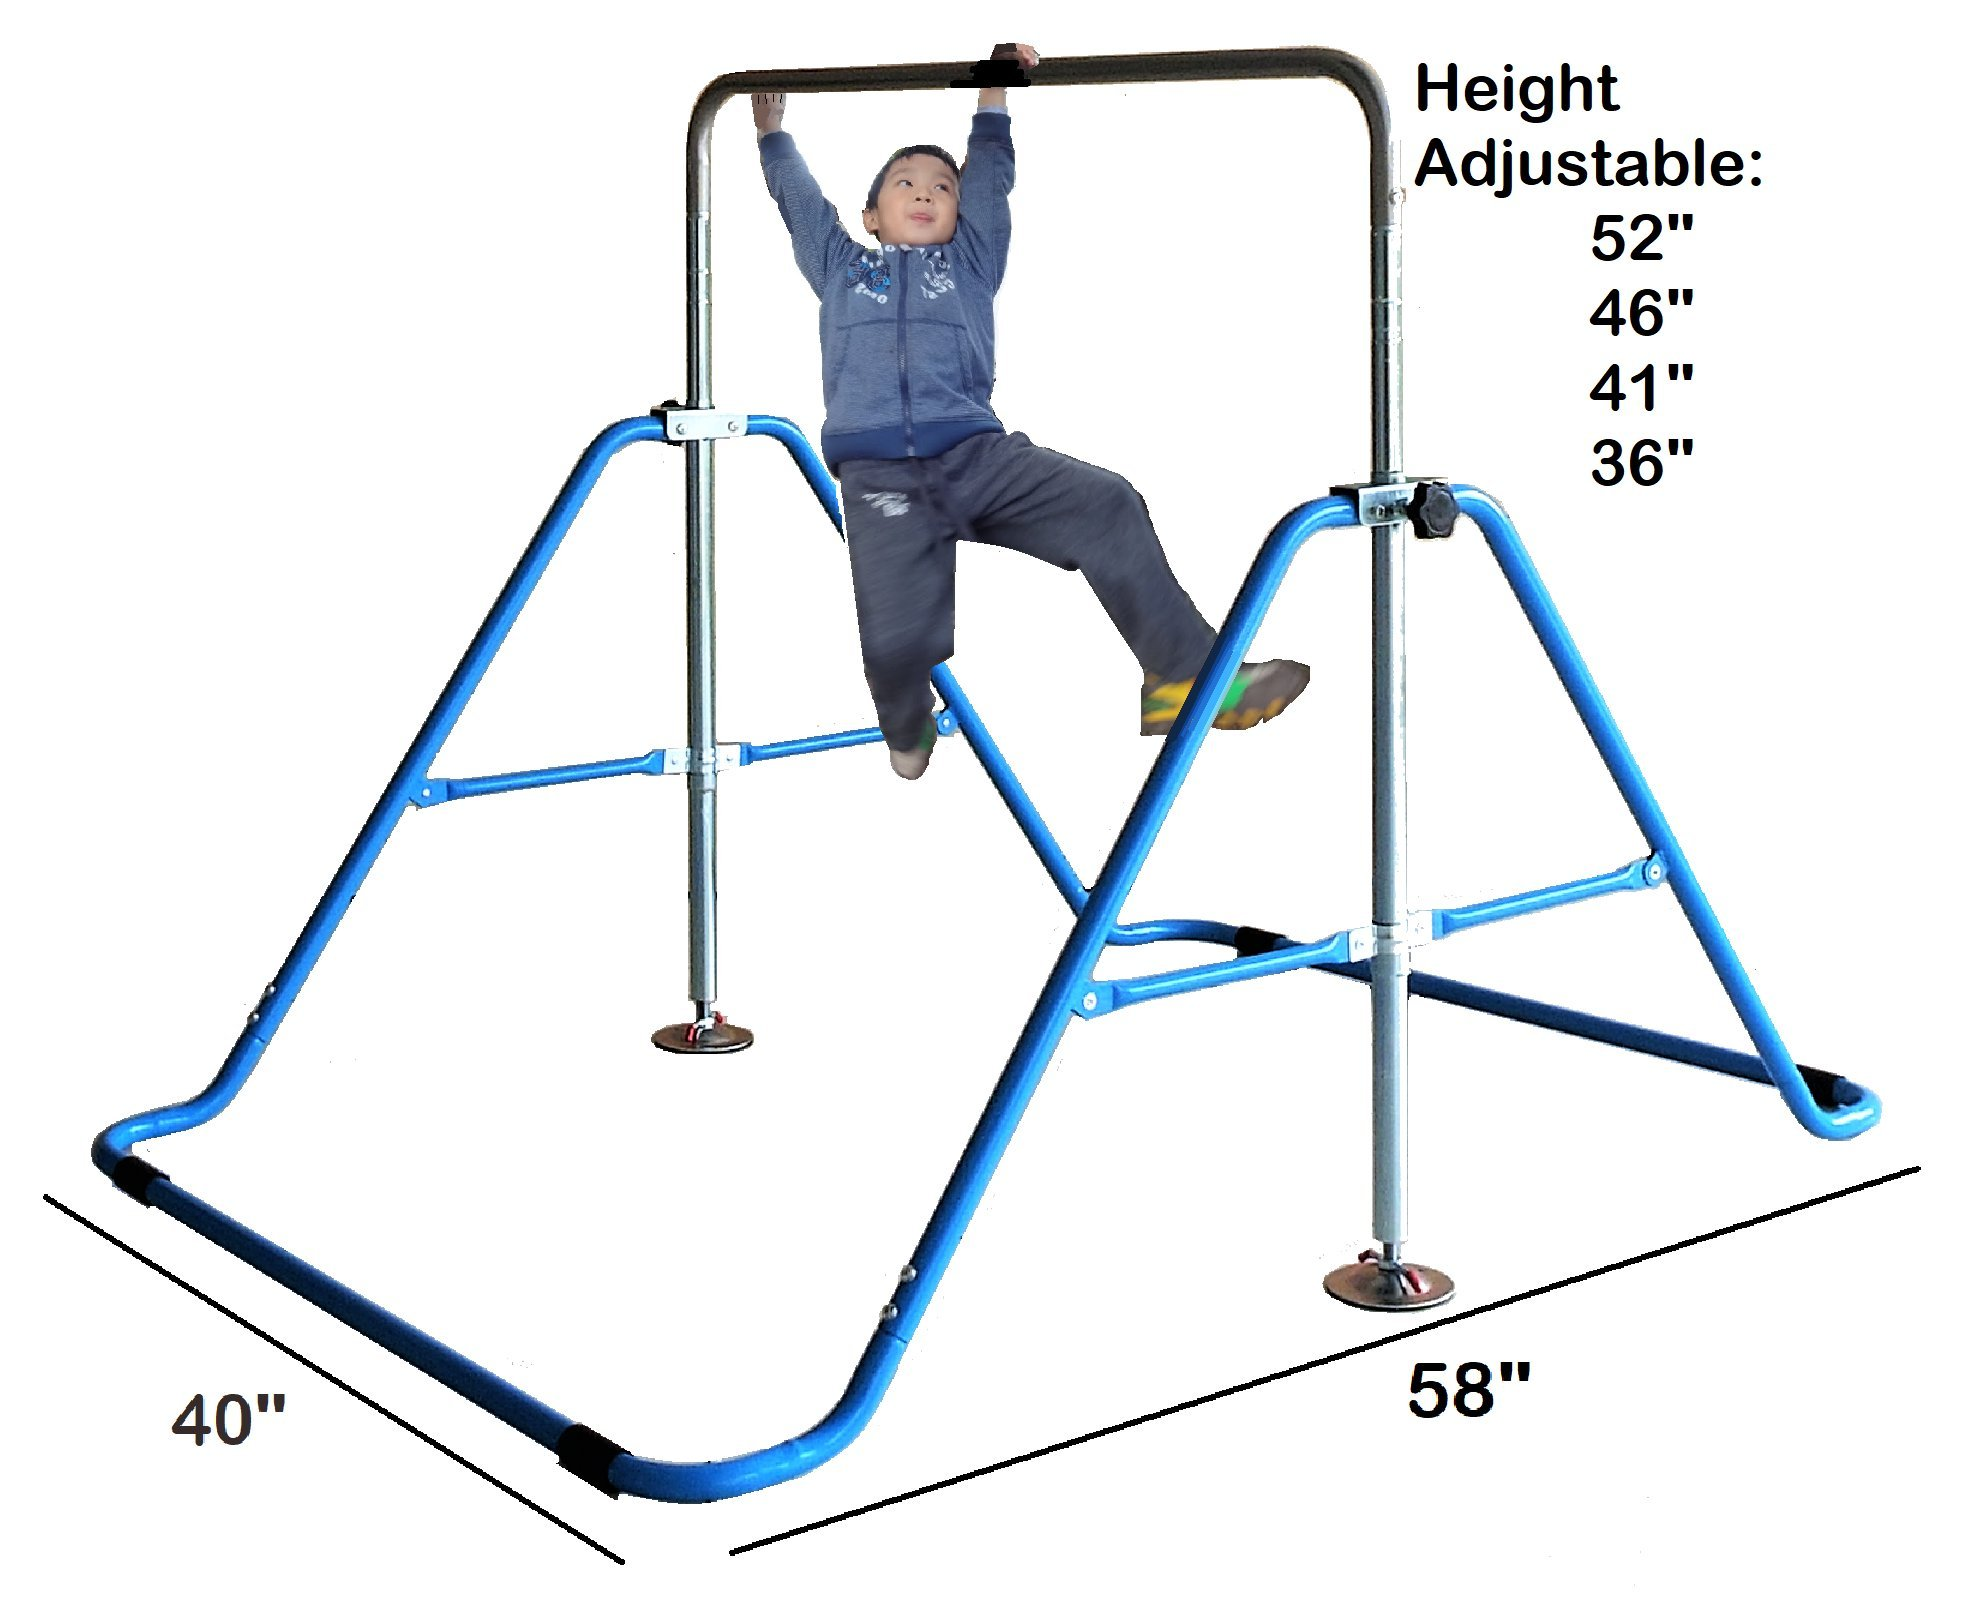 Kids Jungle Gymnastics Expandable Junior Training Monkey Bars Climbing Tower Child Play Training Gym Blue by Kids Jungle